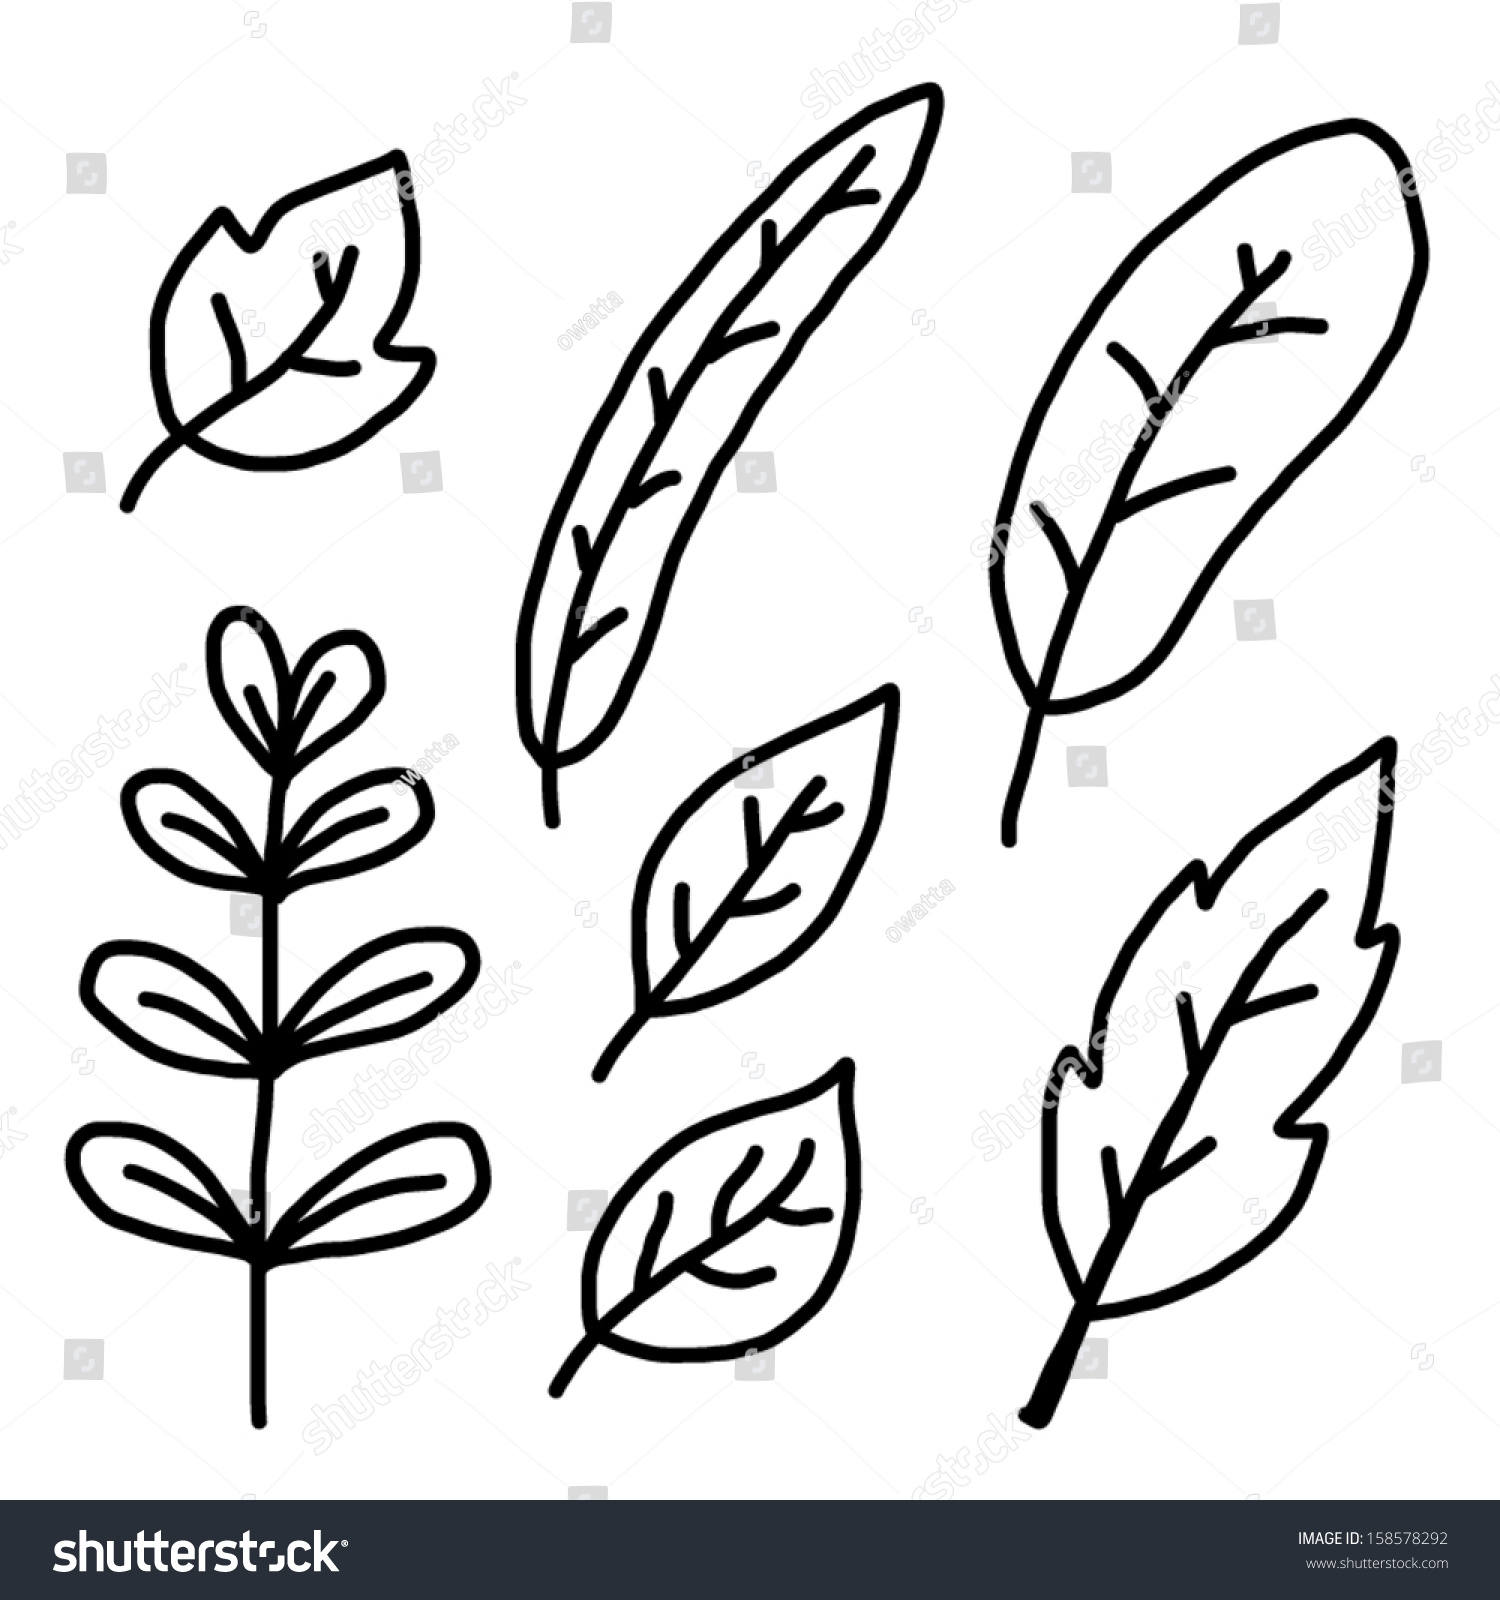 Many Type Plant Leaf Cartoon Vector Stock Vector 158578292 ...